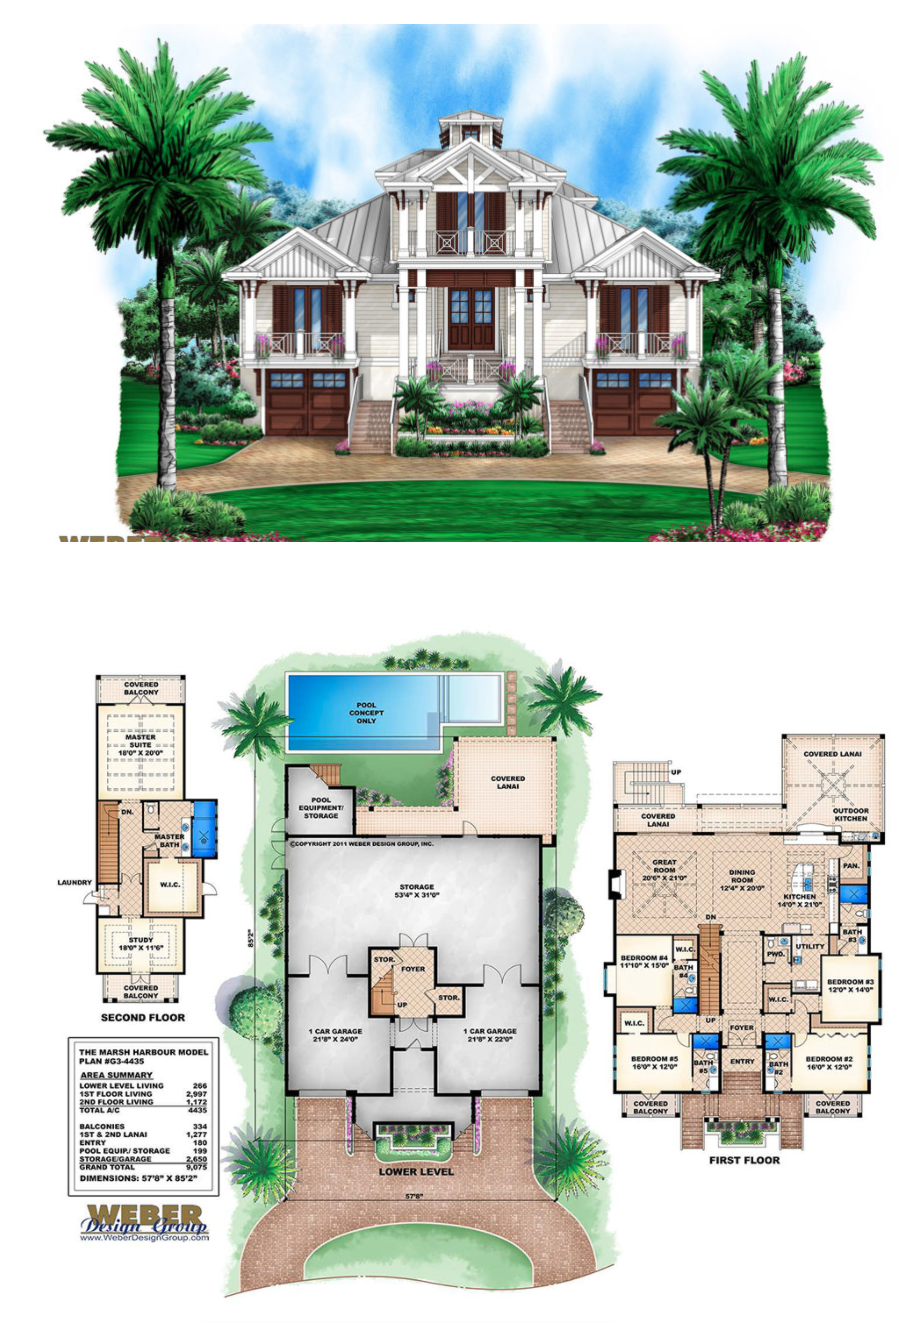 Beach House Plan 3 Story Old Florida Coastal Home Floor Plan Florida House Plans Beach House Floor Plans Beach House Plan